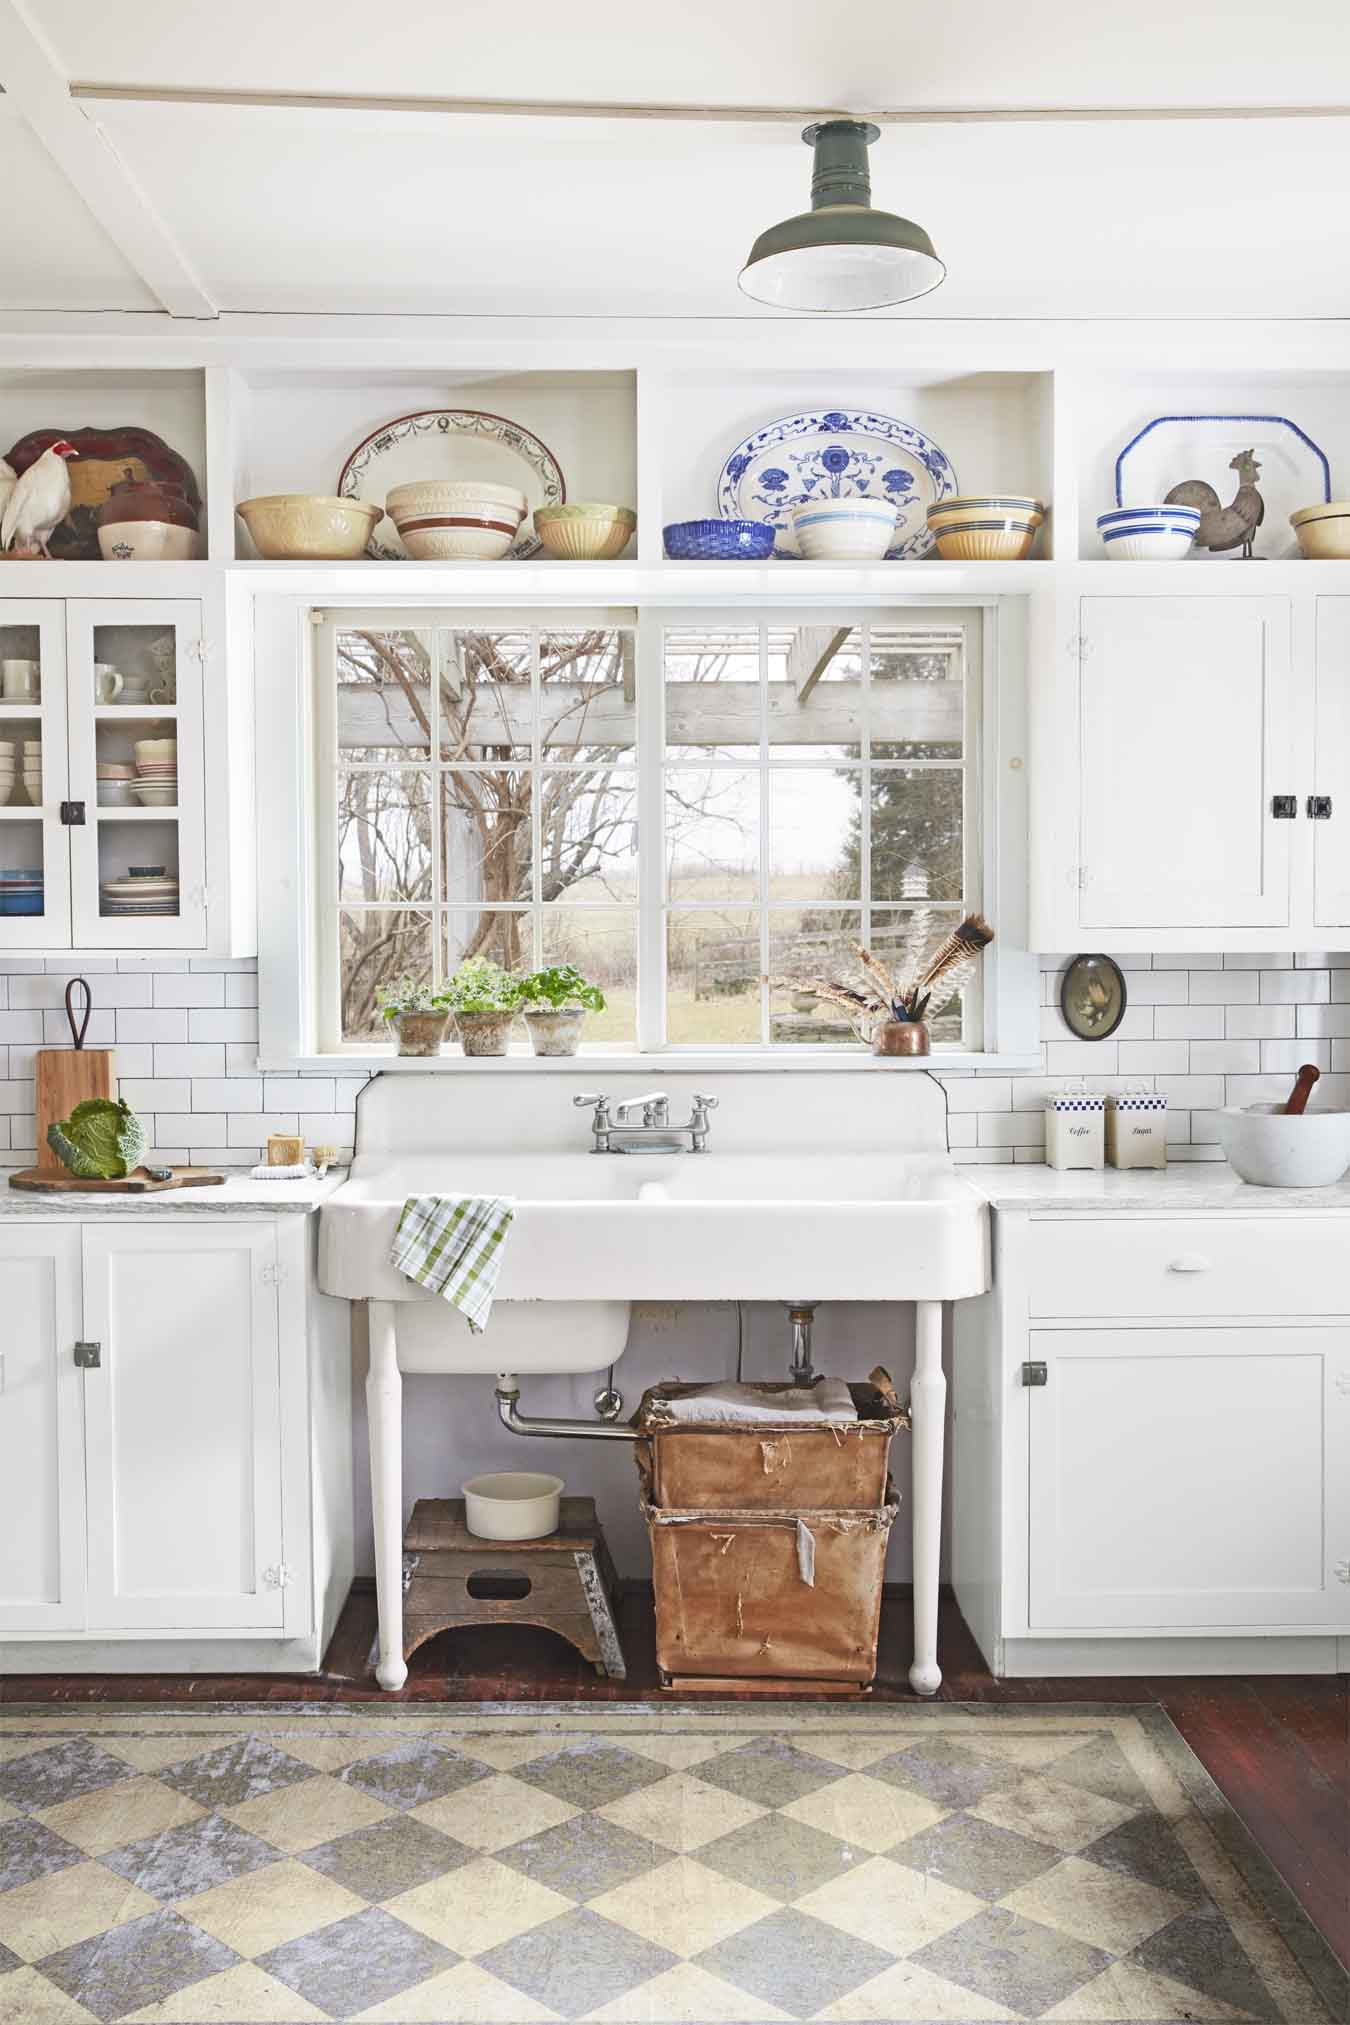 20 vintage kitchen decorating ideas design inspiration for Kitchen ideas vintage